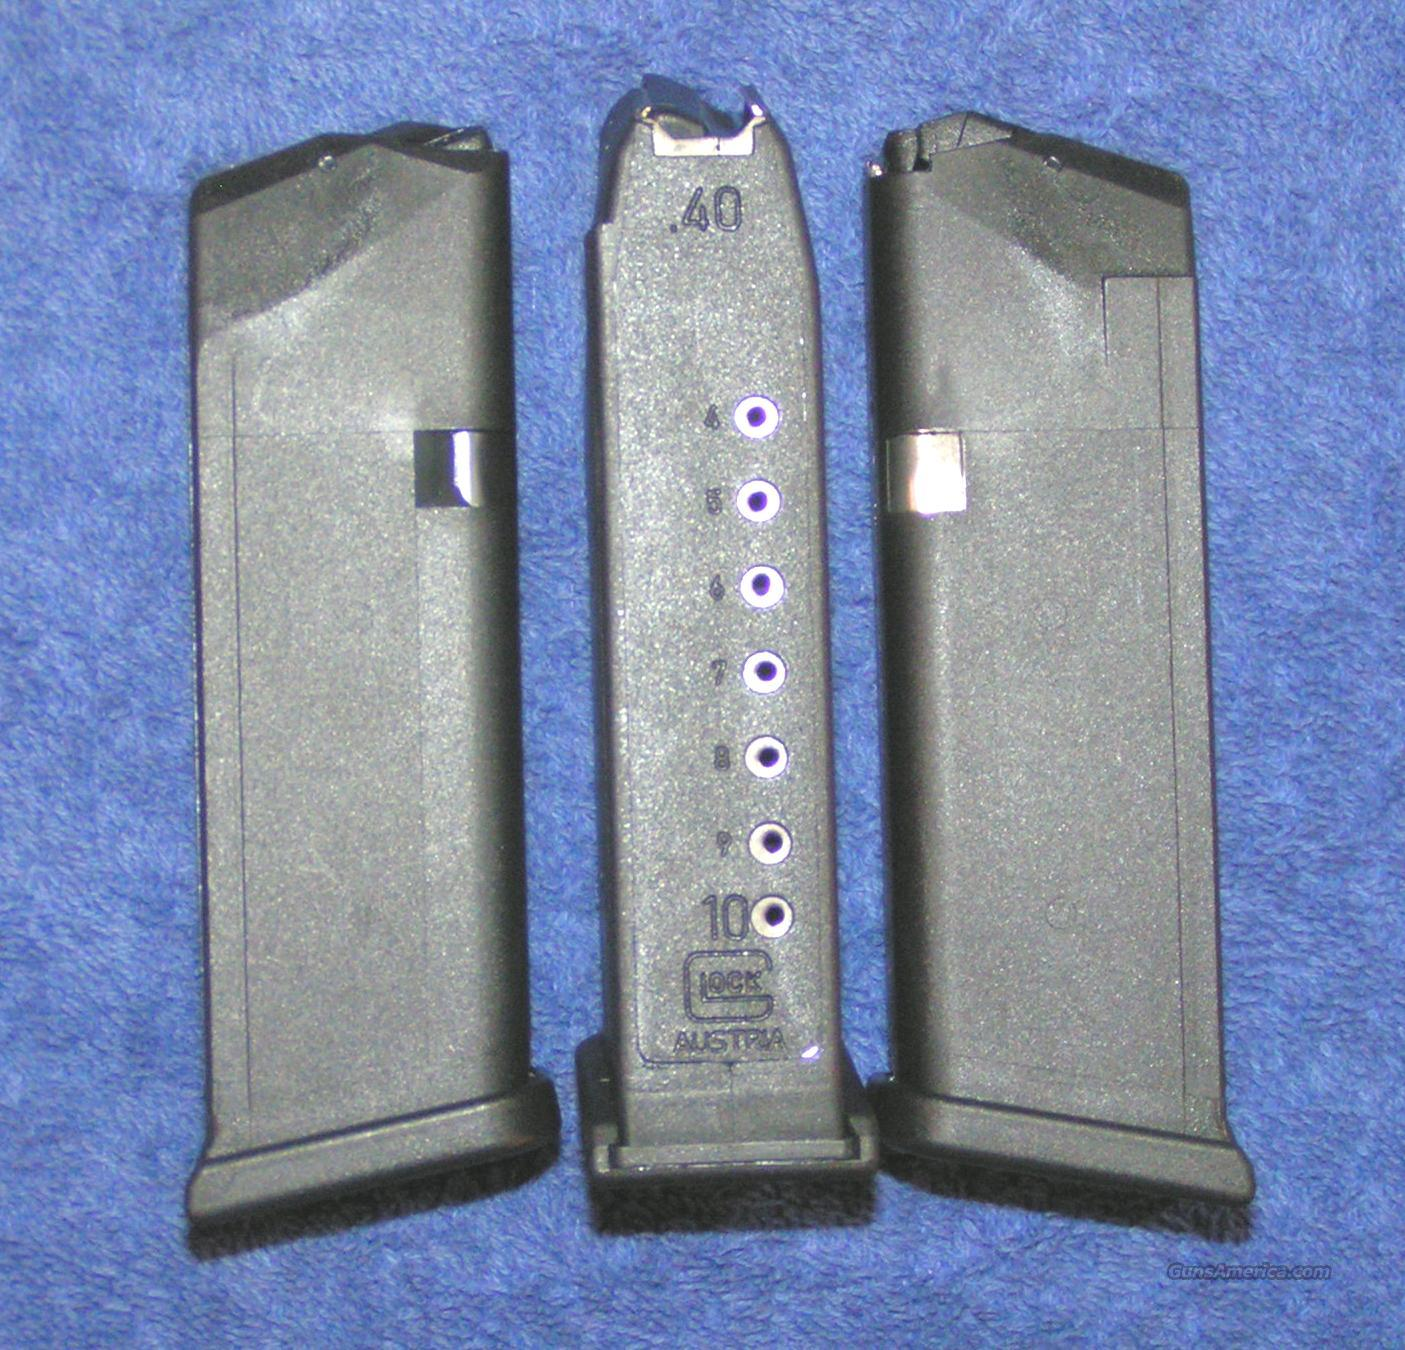 3 Glock 23 mags 10 rd 40S&W factory new $235 each  Non-Guns > Magazines & Clips > Pistol Magazines > Glock